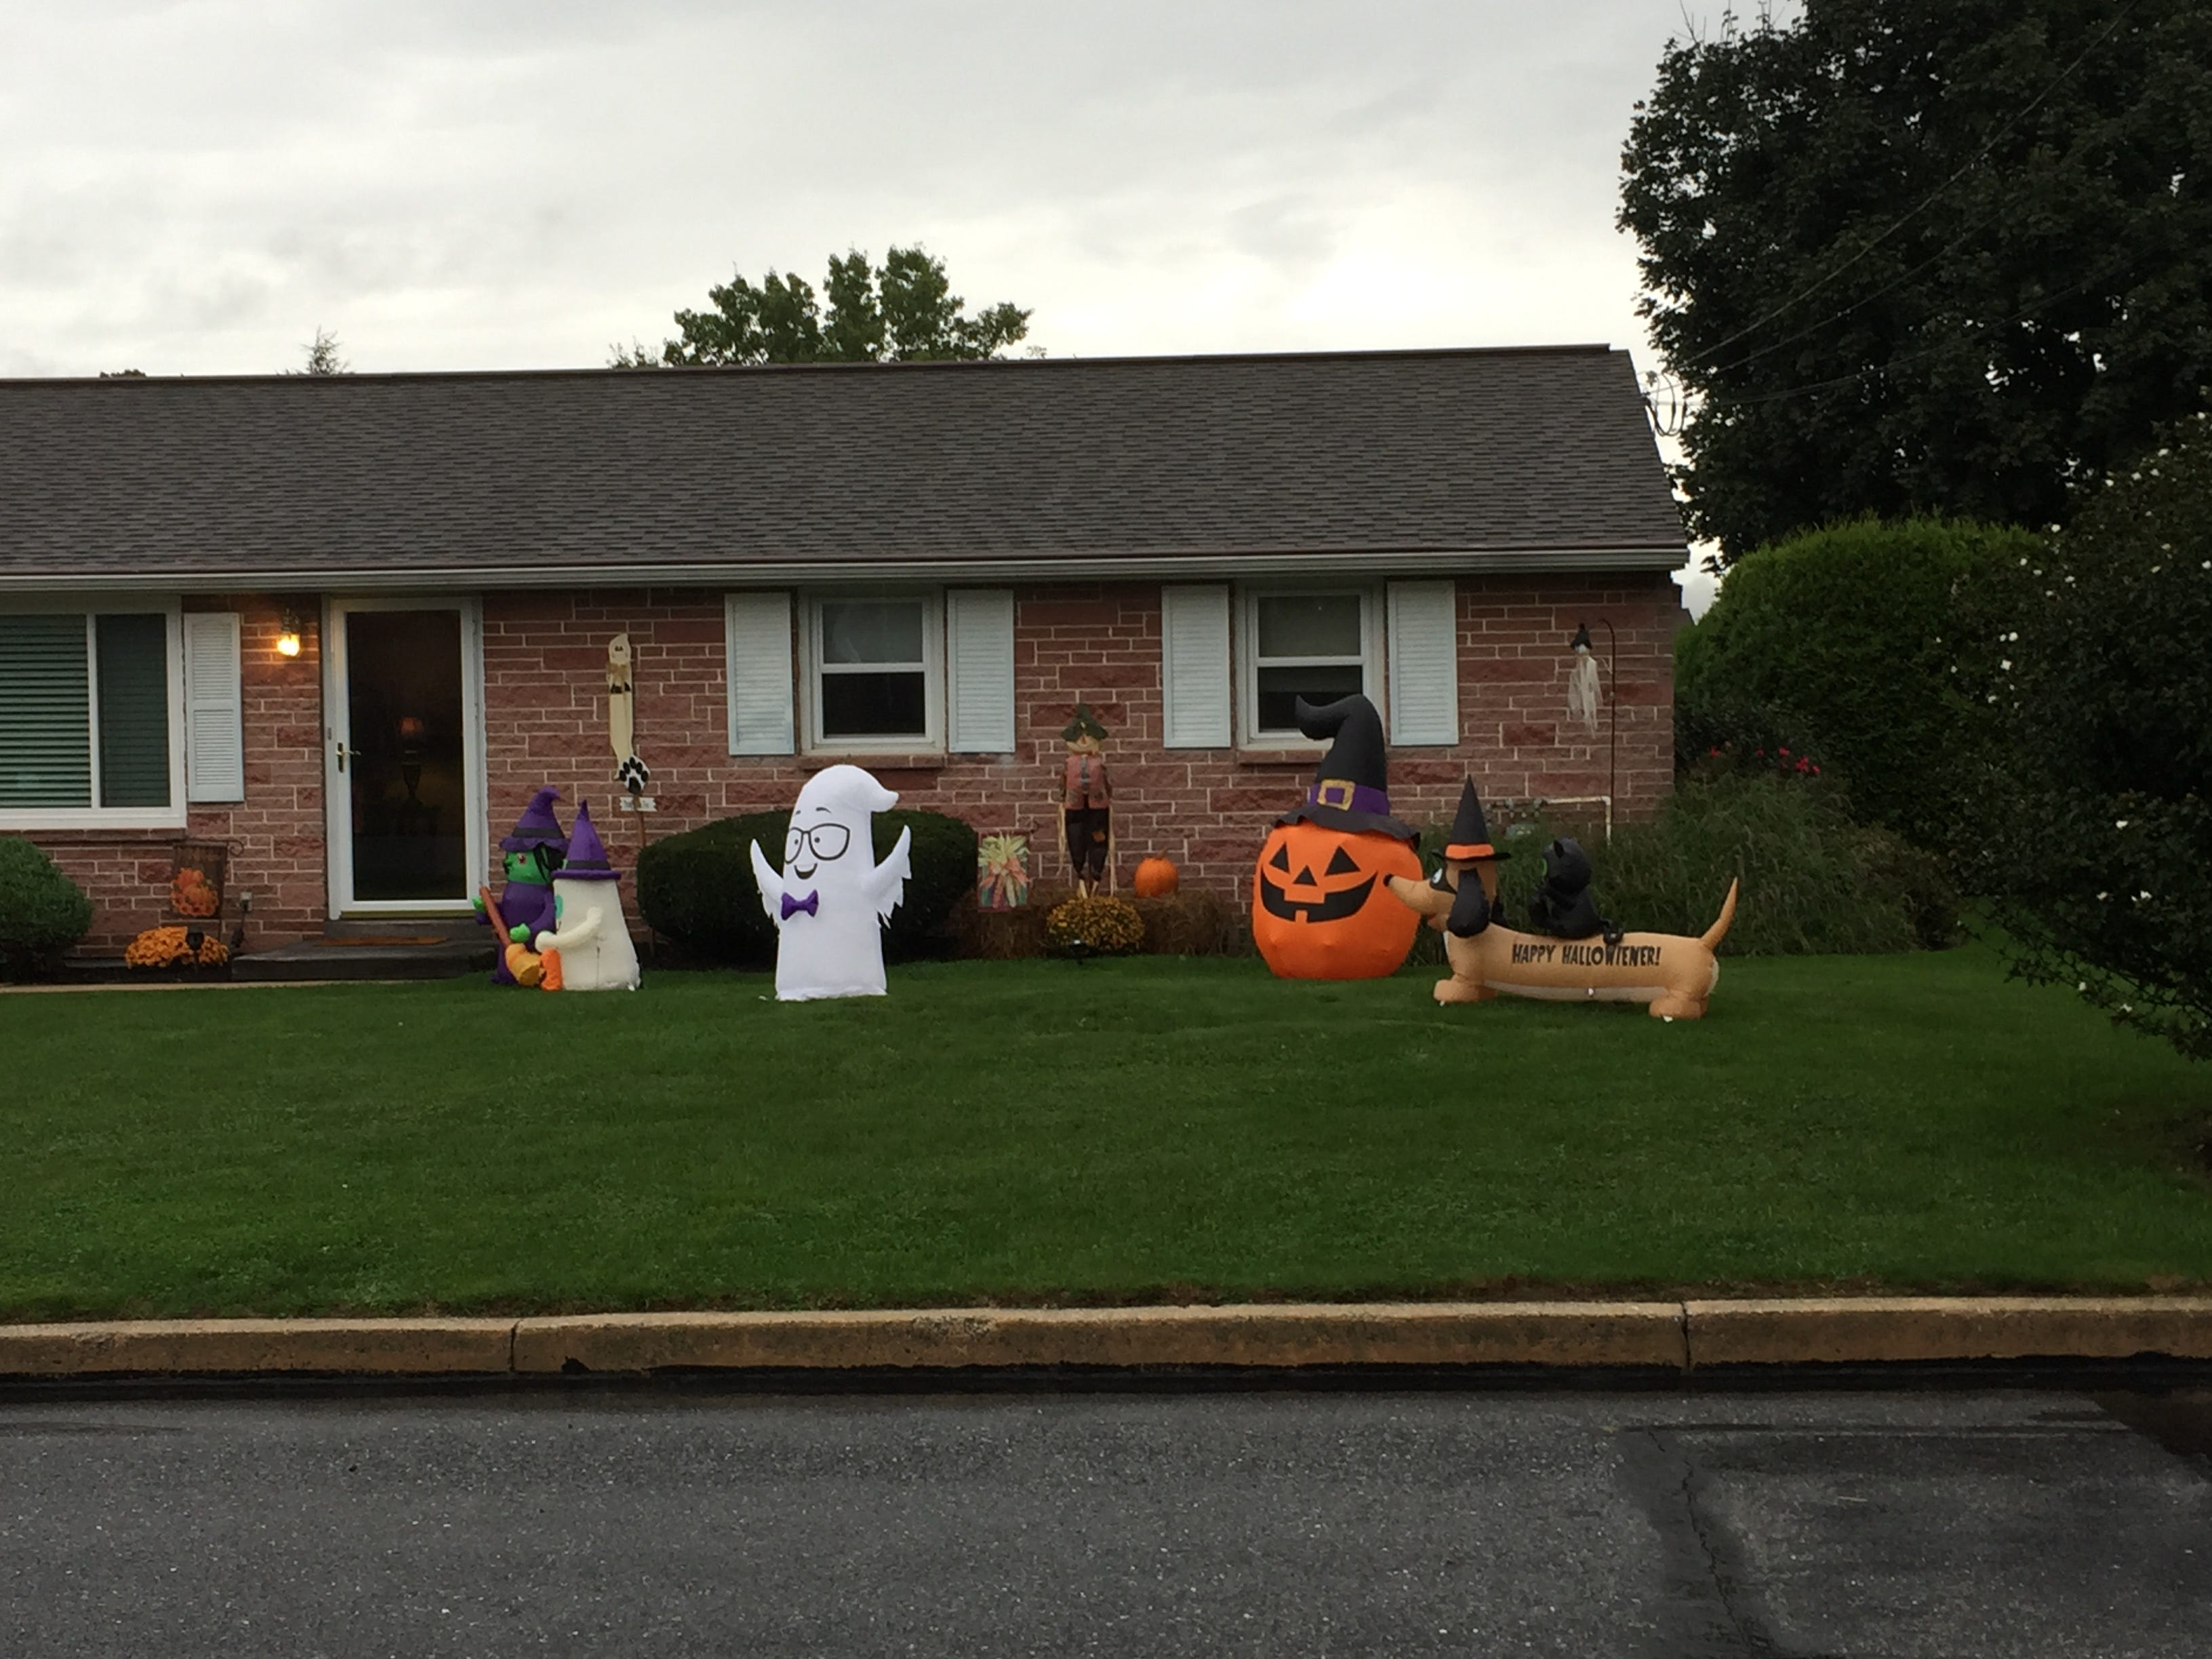 A bunch of welcoming ghouls -- and an inflatable dog with a black cat on his back -- await trick-or-treaters on Willow Lane in Lebanon.